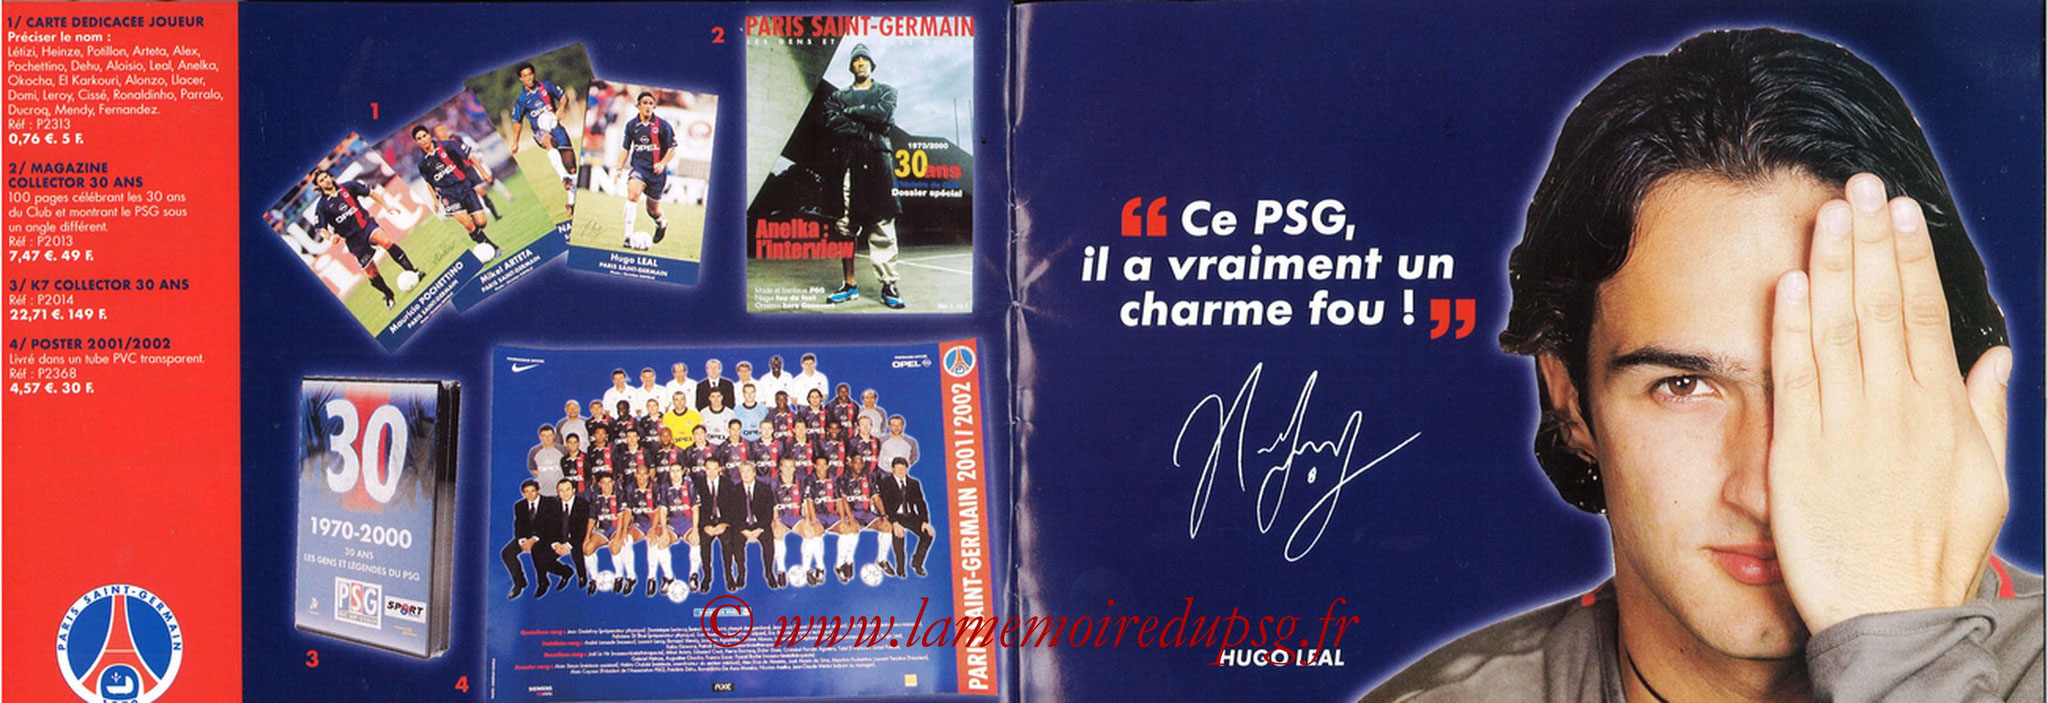 Catalogue PSG - 2001-02 - Noêl - Pages 22 et 23